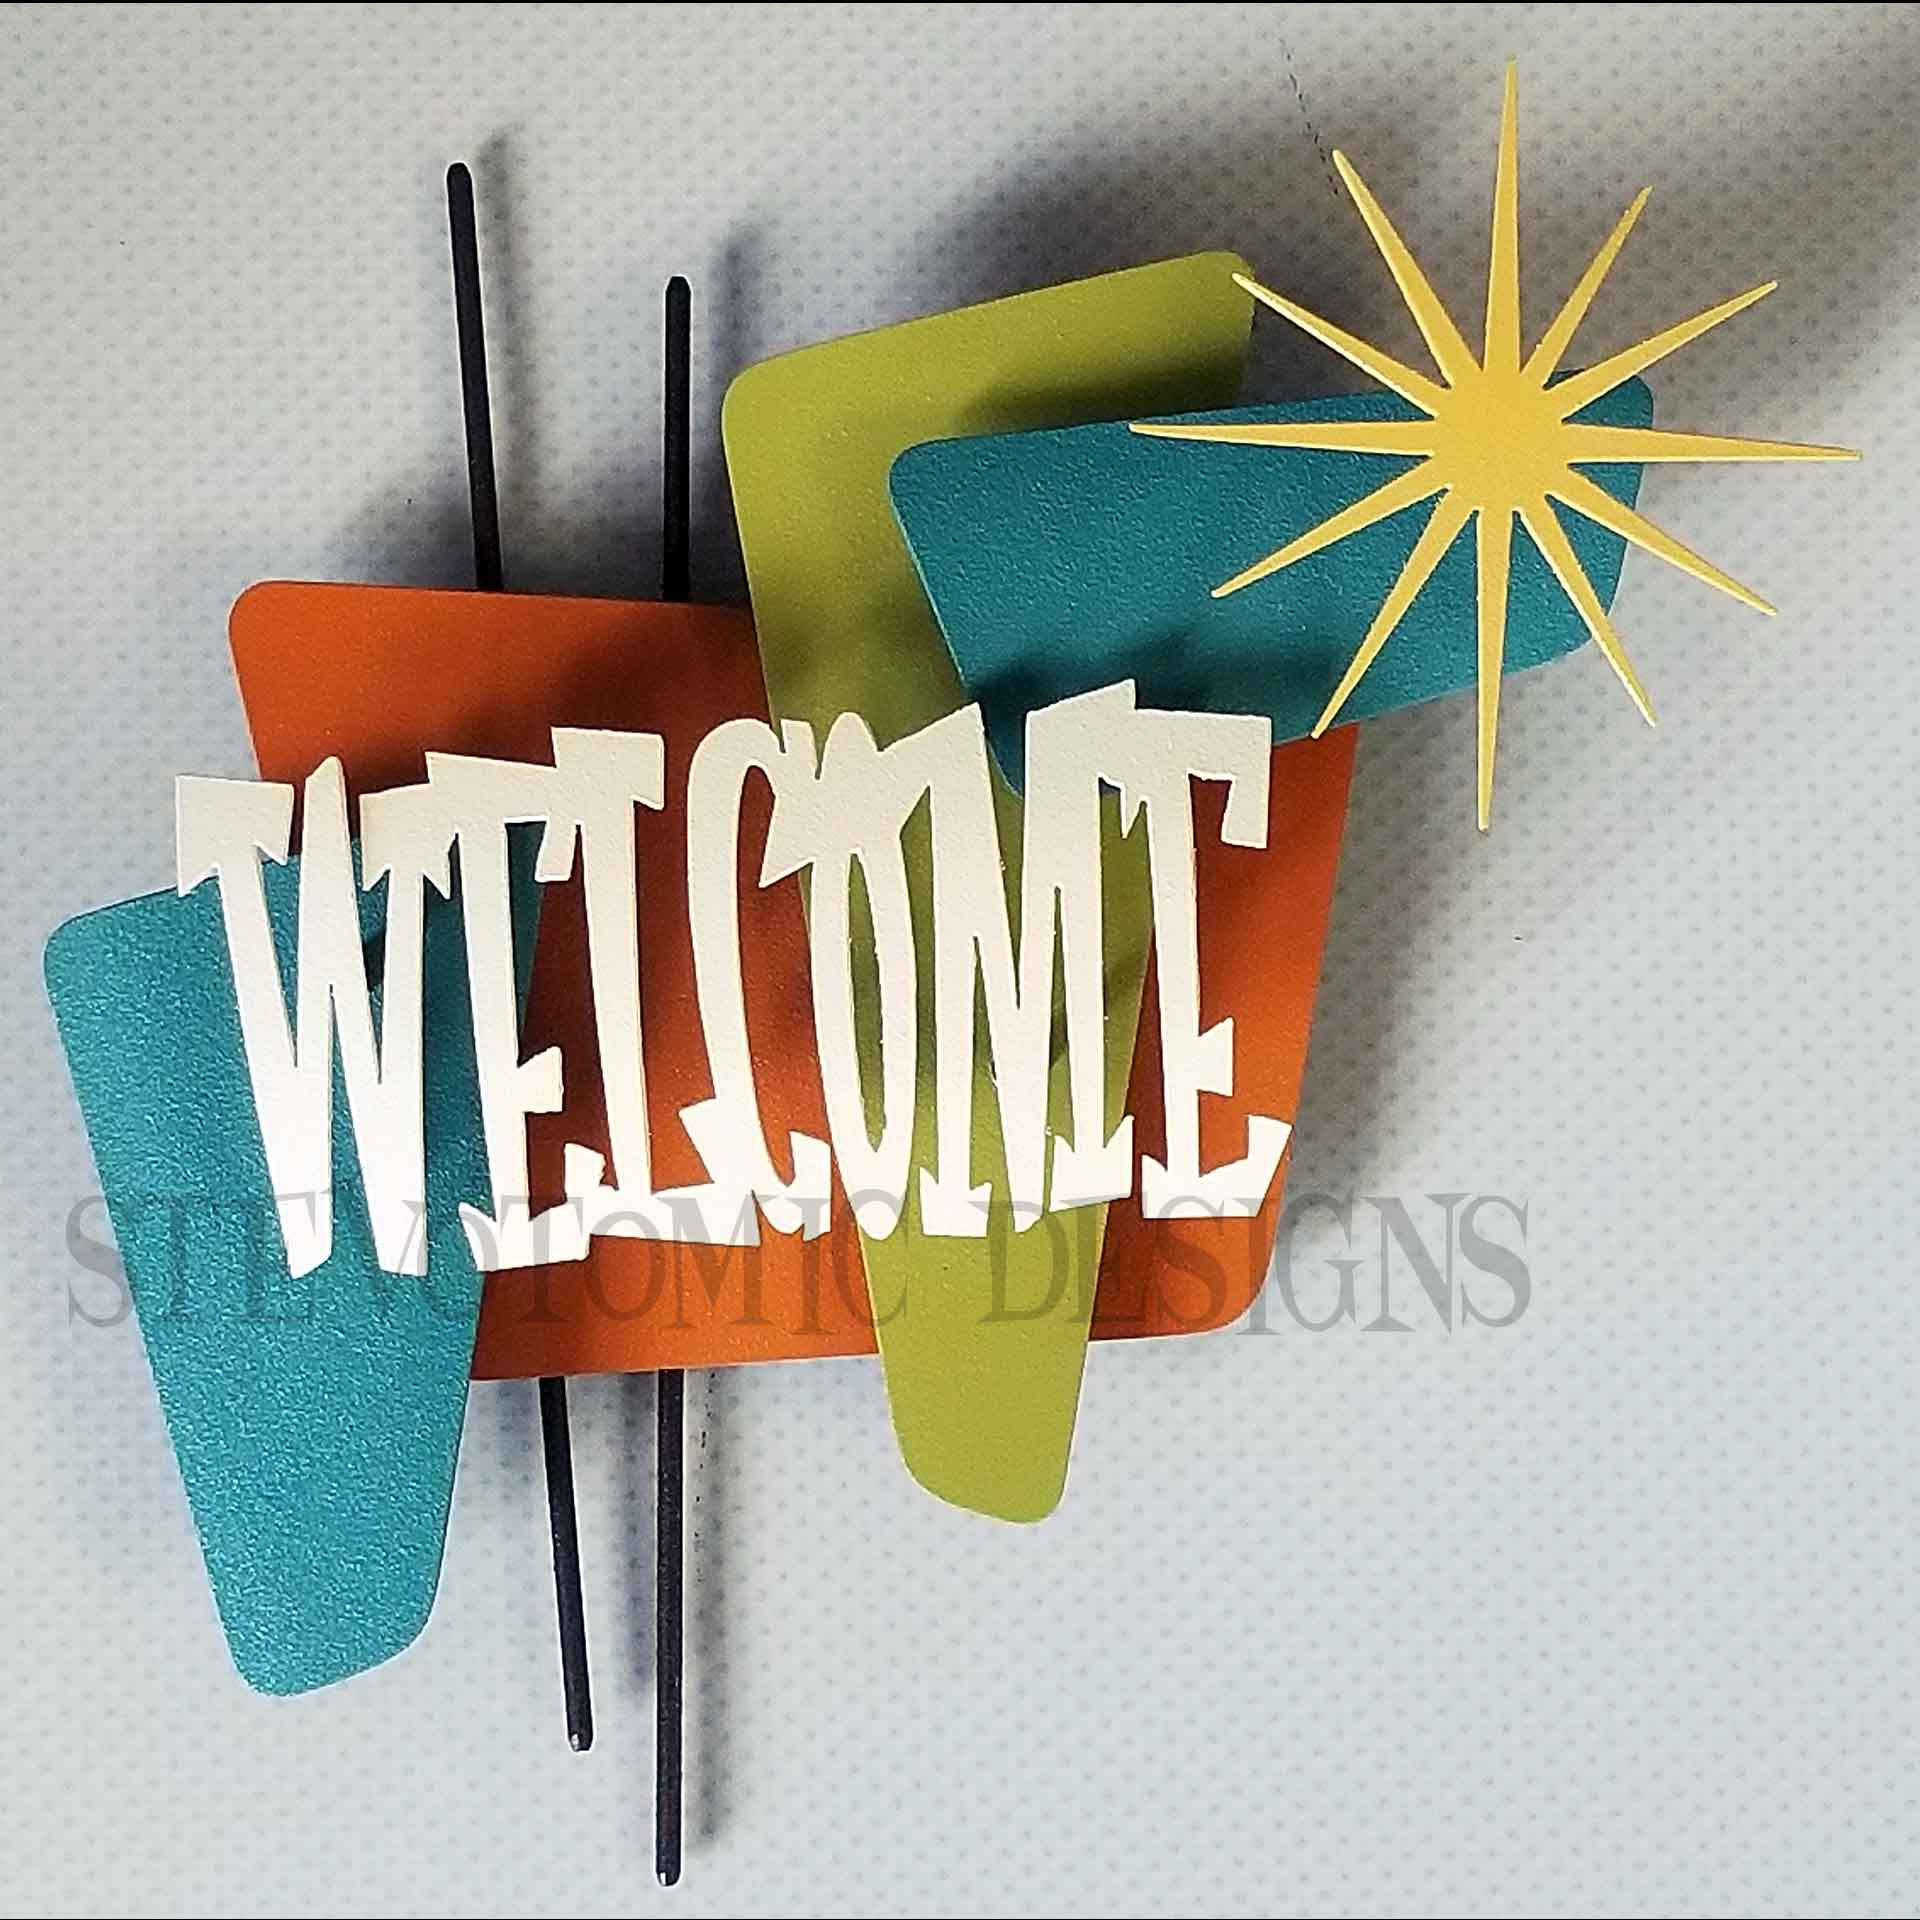 WELCOME-017-00012